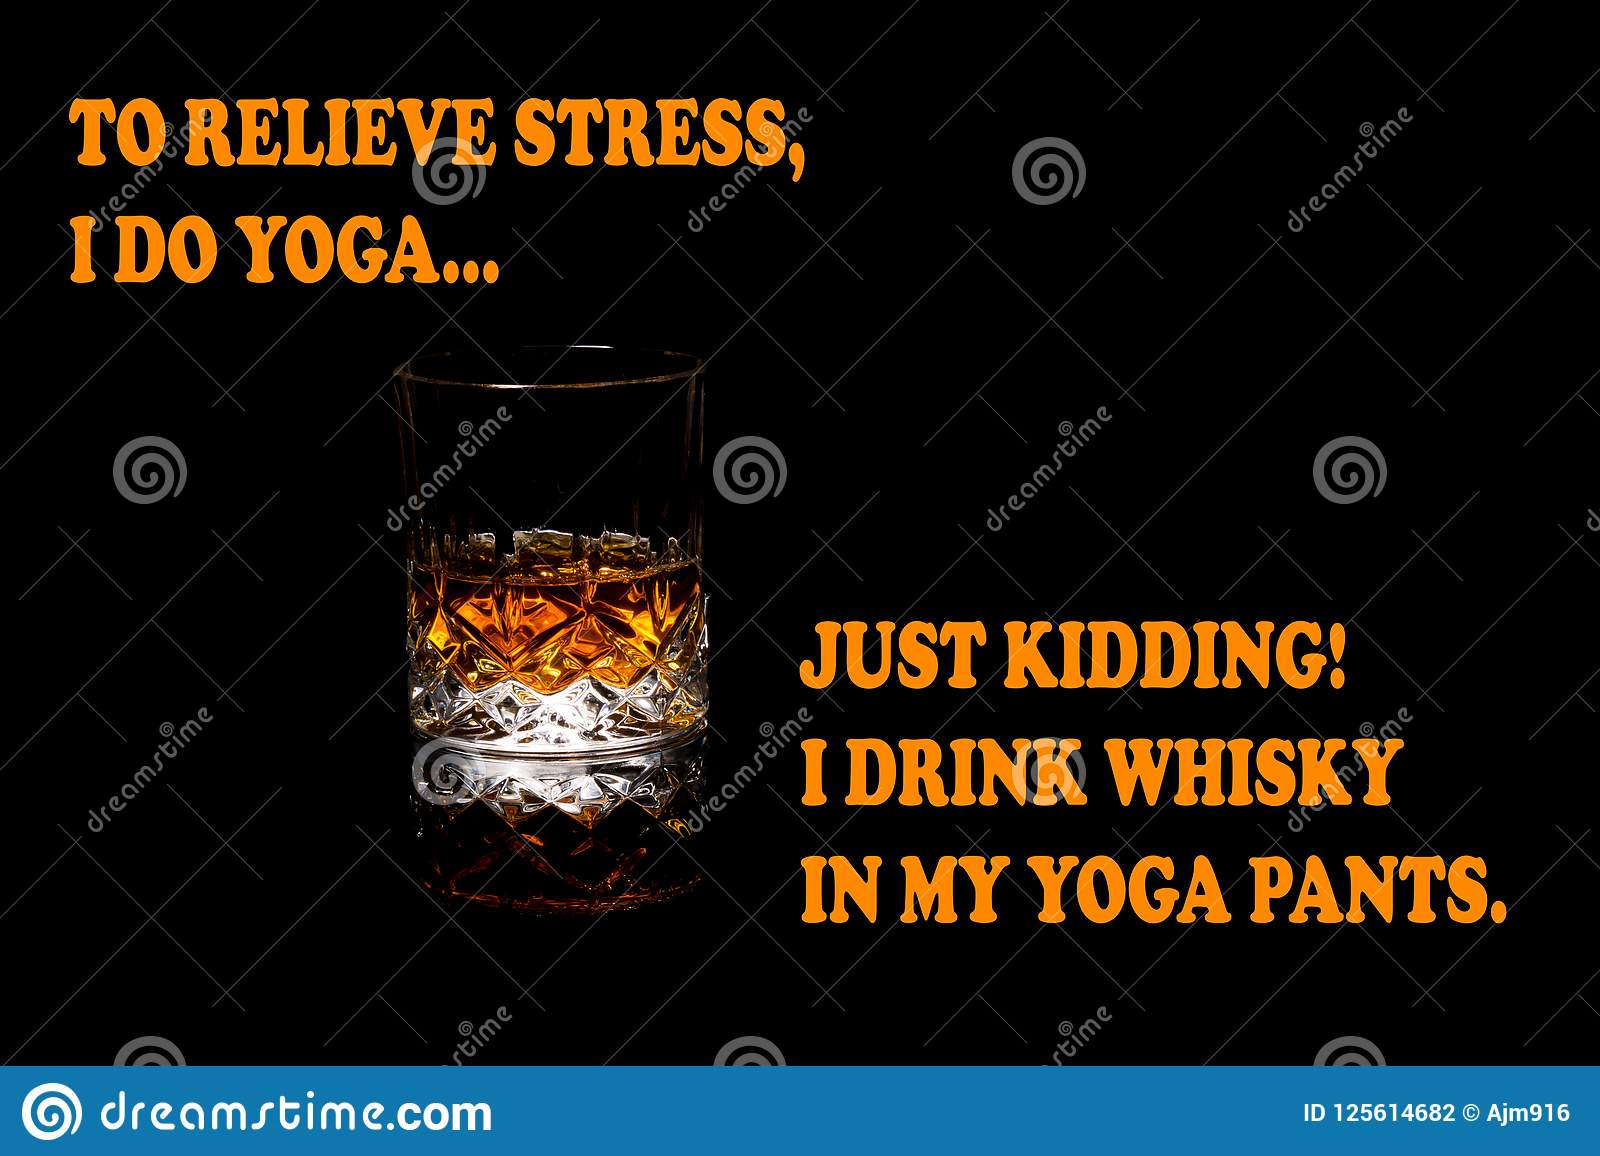 29bbde7f Whiskey Funny Meme, I Drink Whiskey In Yoga Pants Stock Photo ...